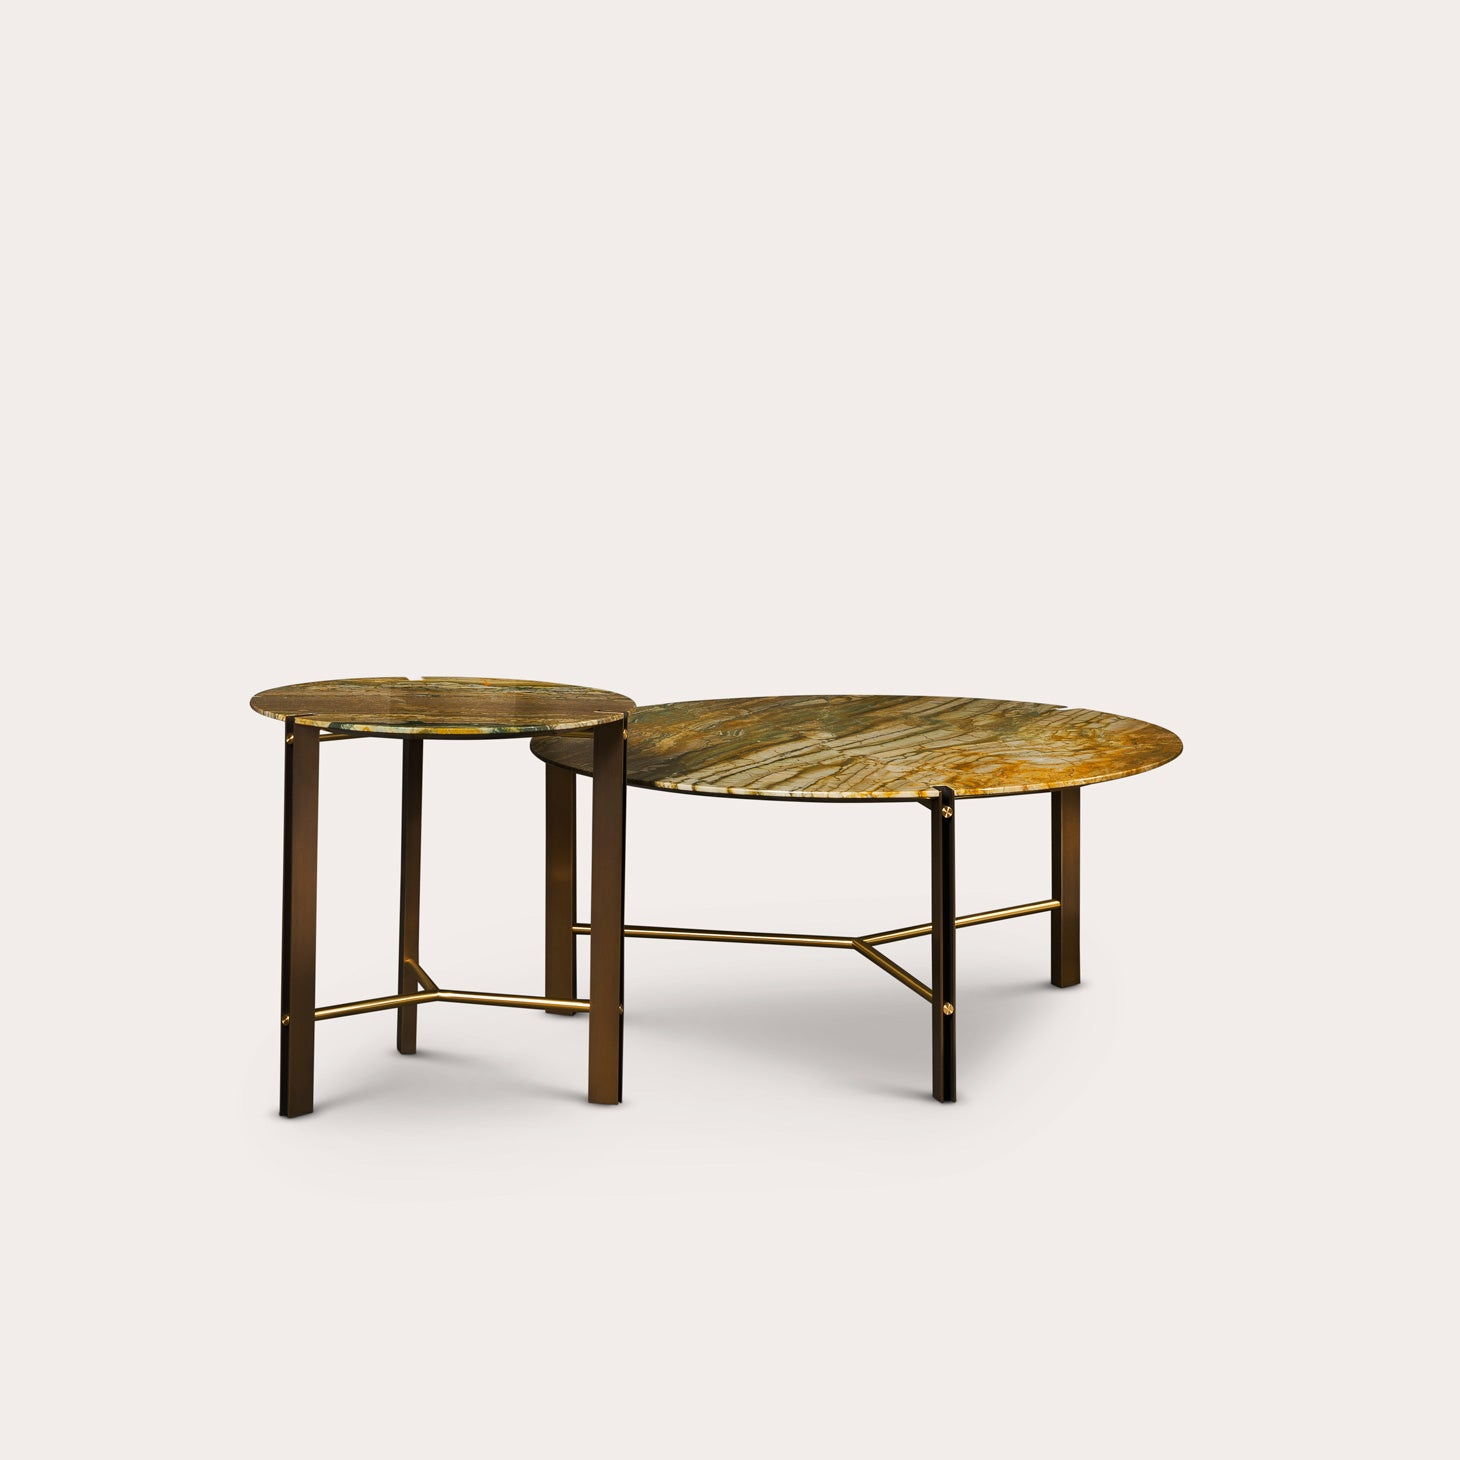 TUNIS Side Table Tables Bruno Moinard Designer Furniture Sku: 773-230-10062